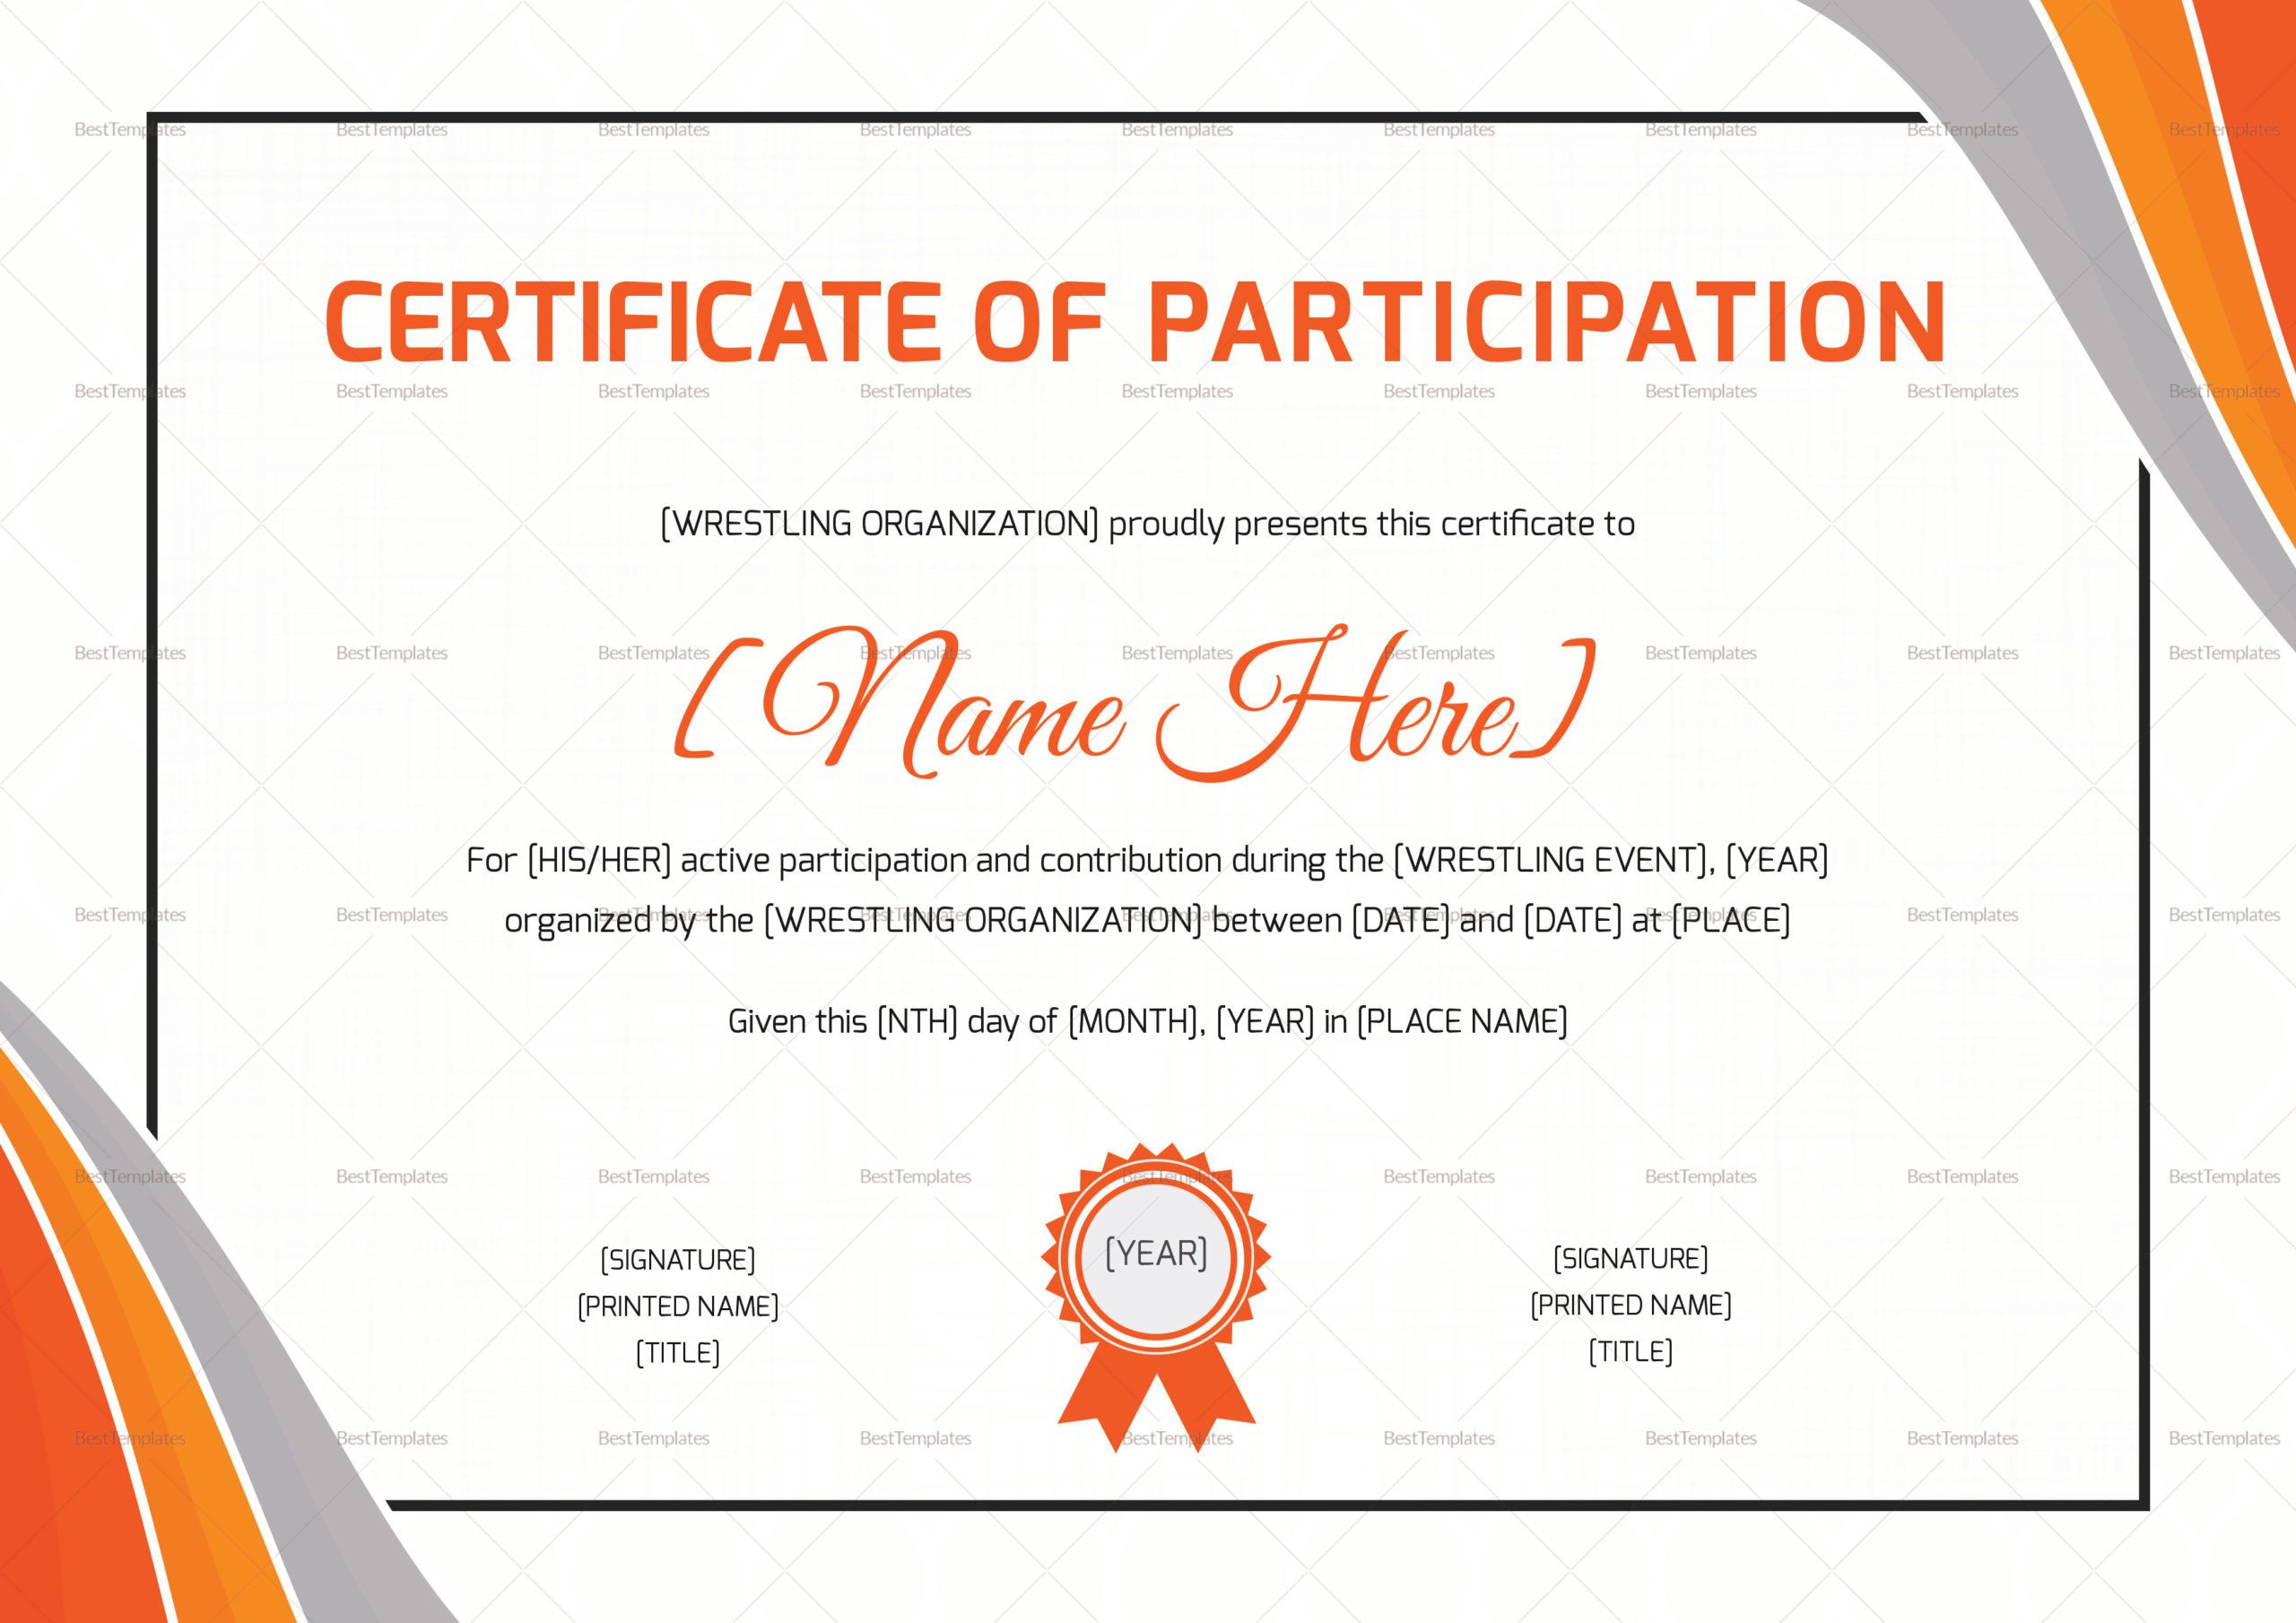 Wrestling Participation Certificate Design Template In Psd With Regard To Templates For Certificates Of Participation